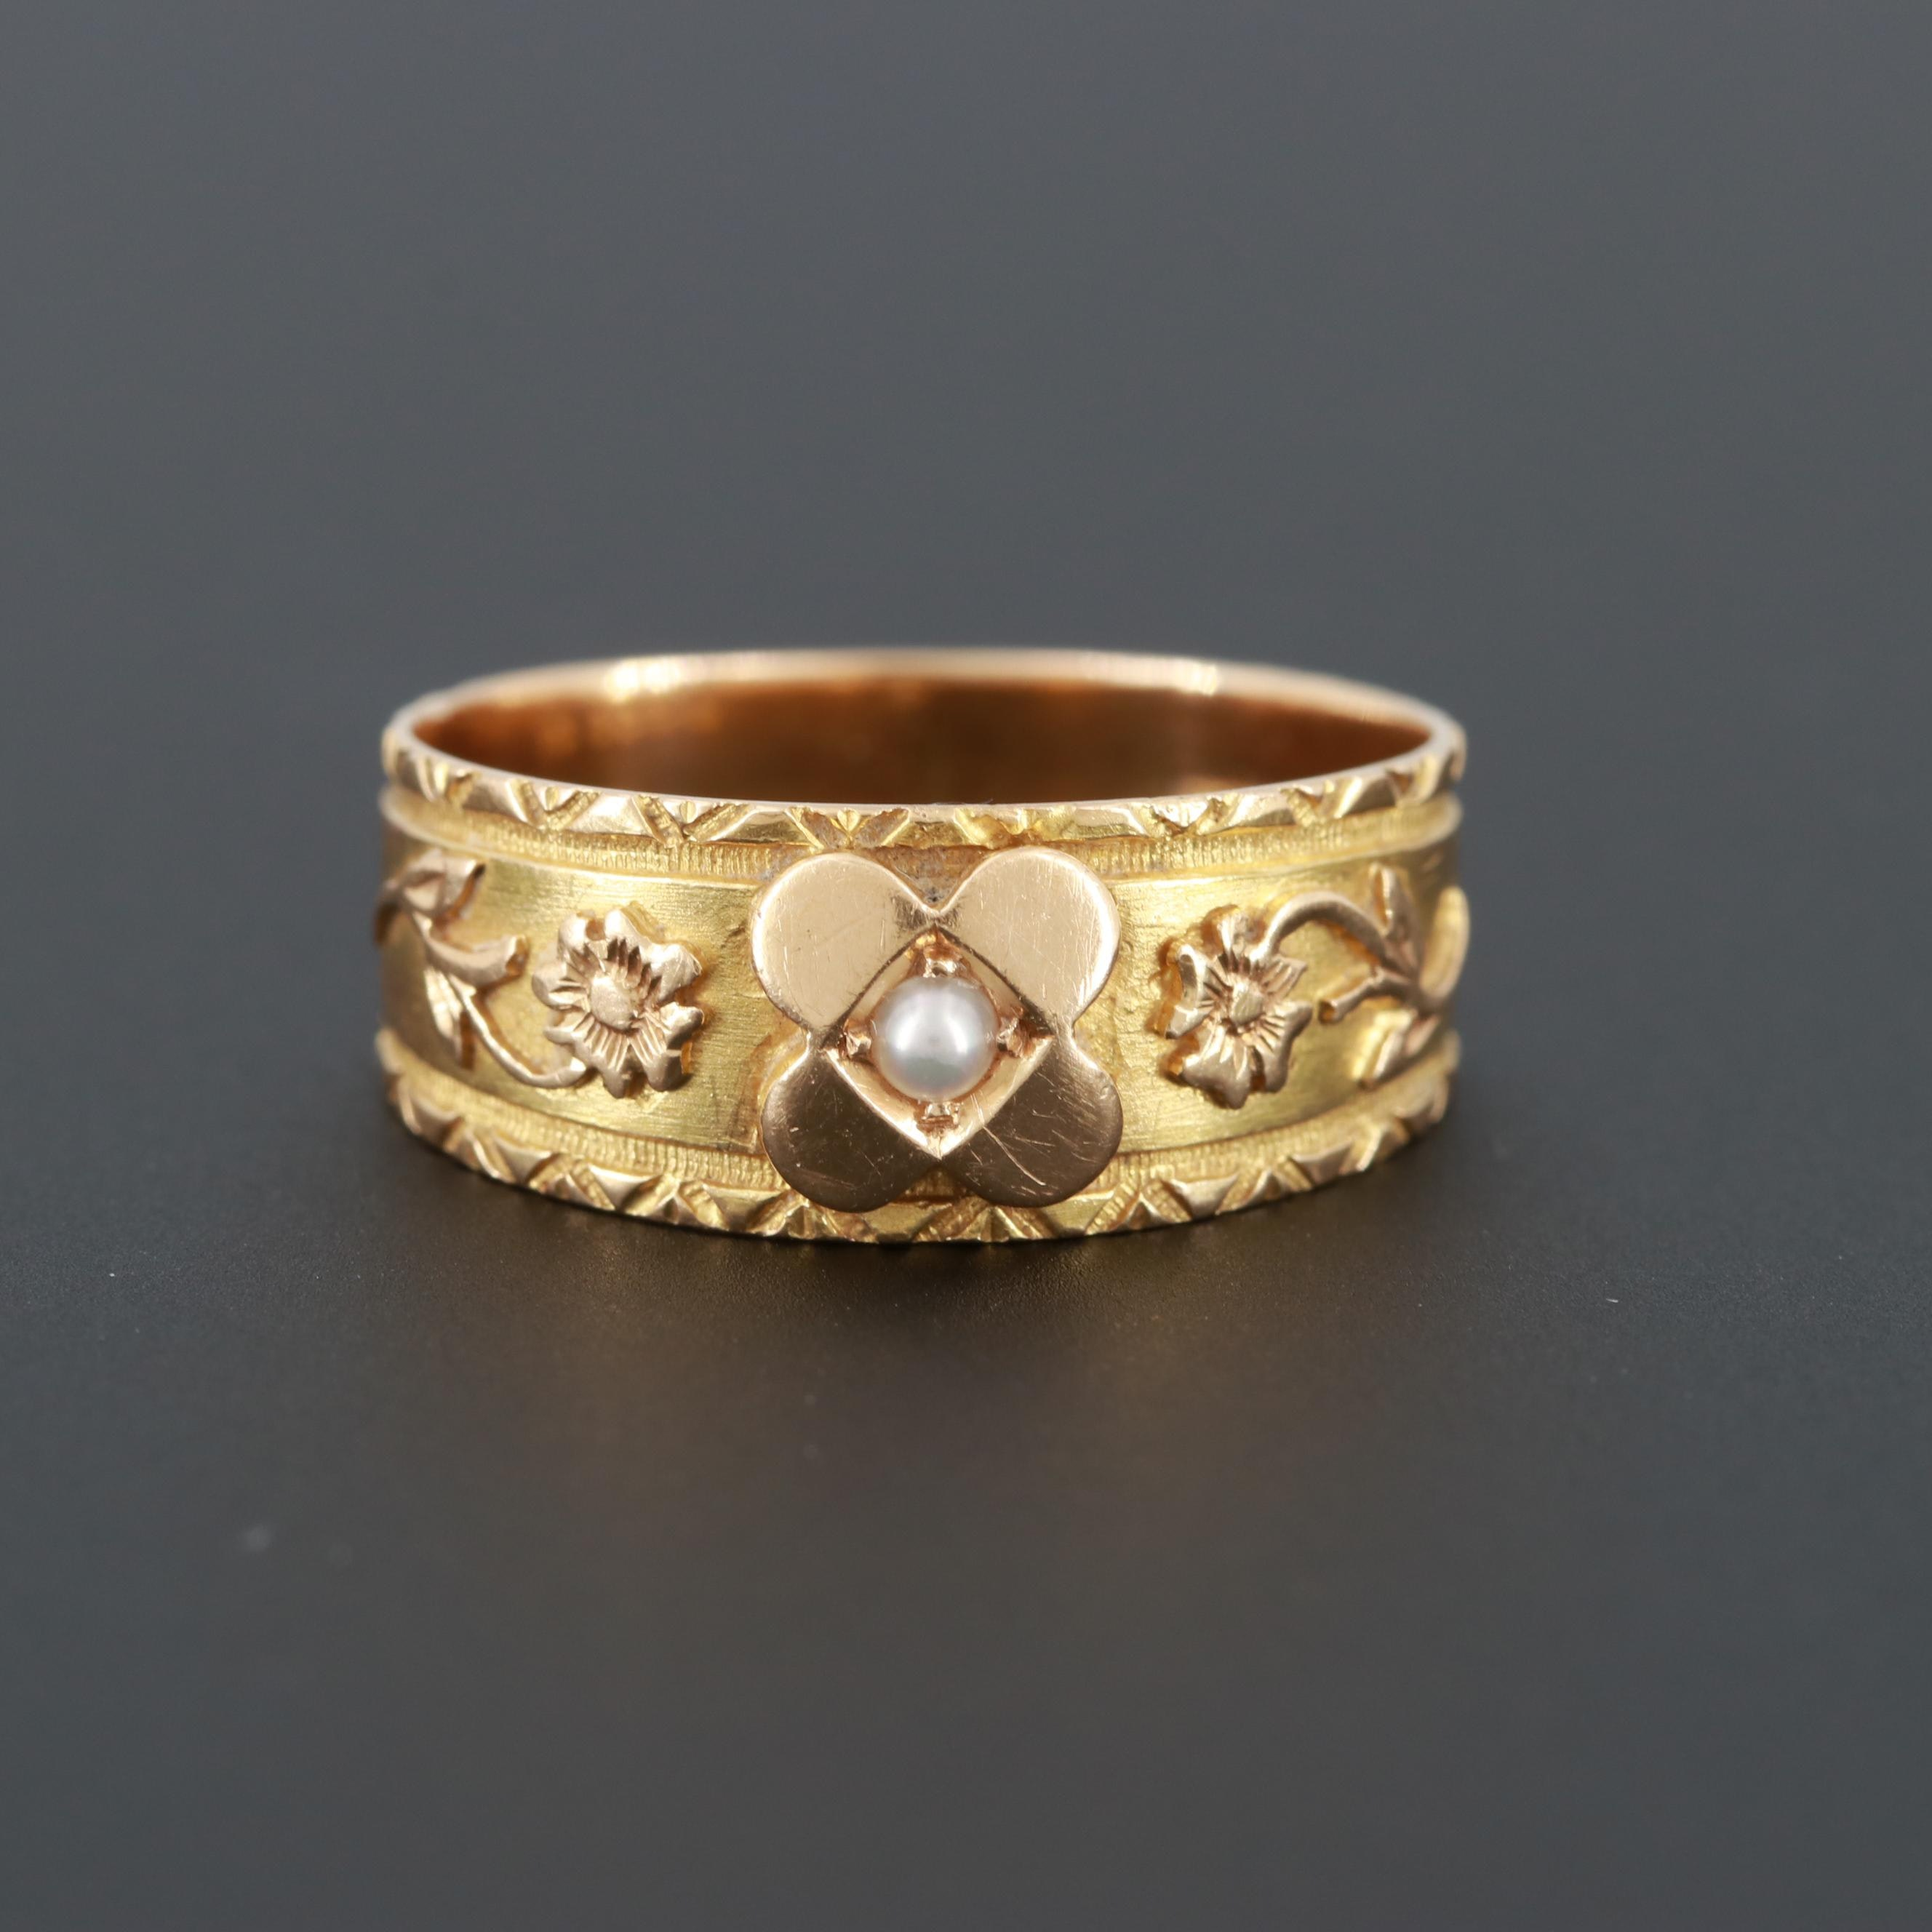 Mid-Victorian 18K Yellow Gold Cultured Pearl Floral Motif Ring